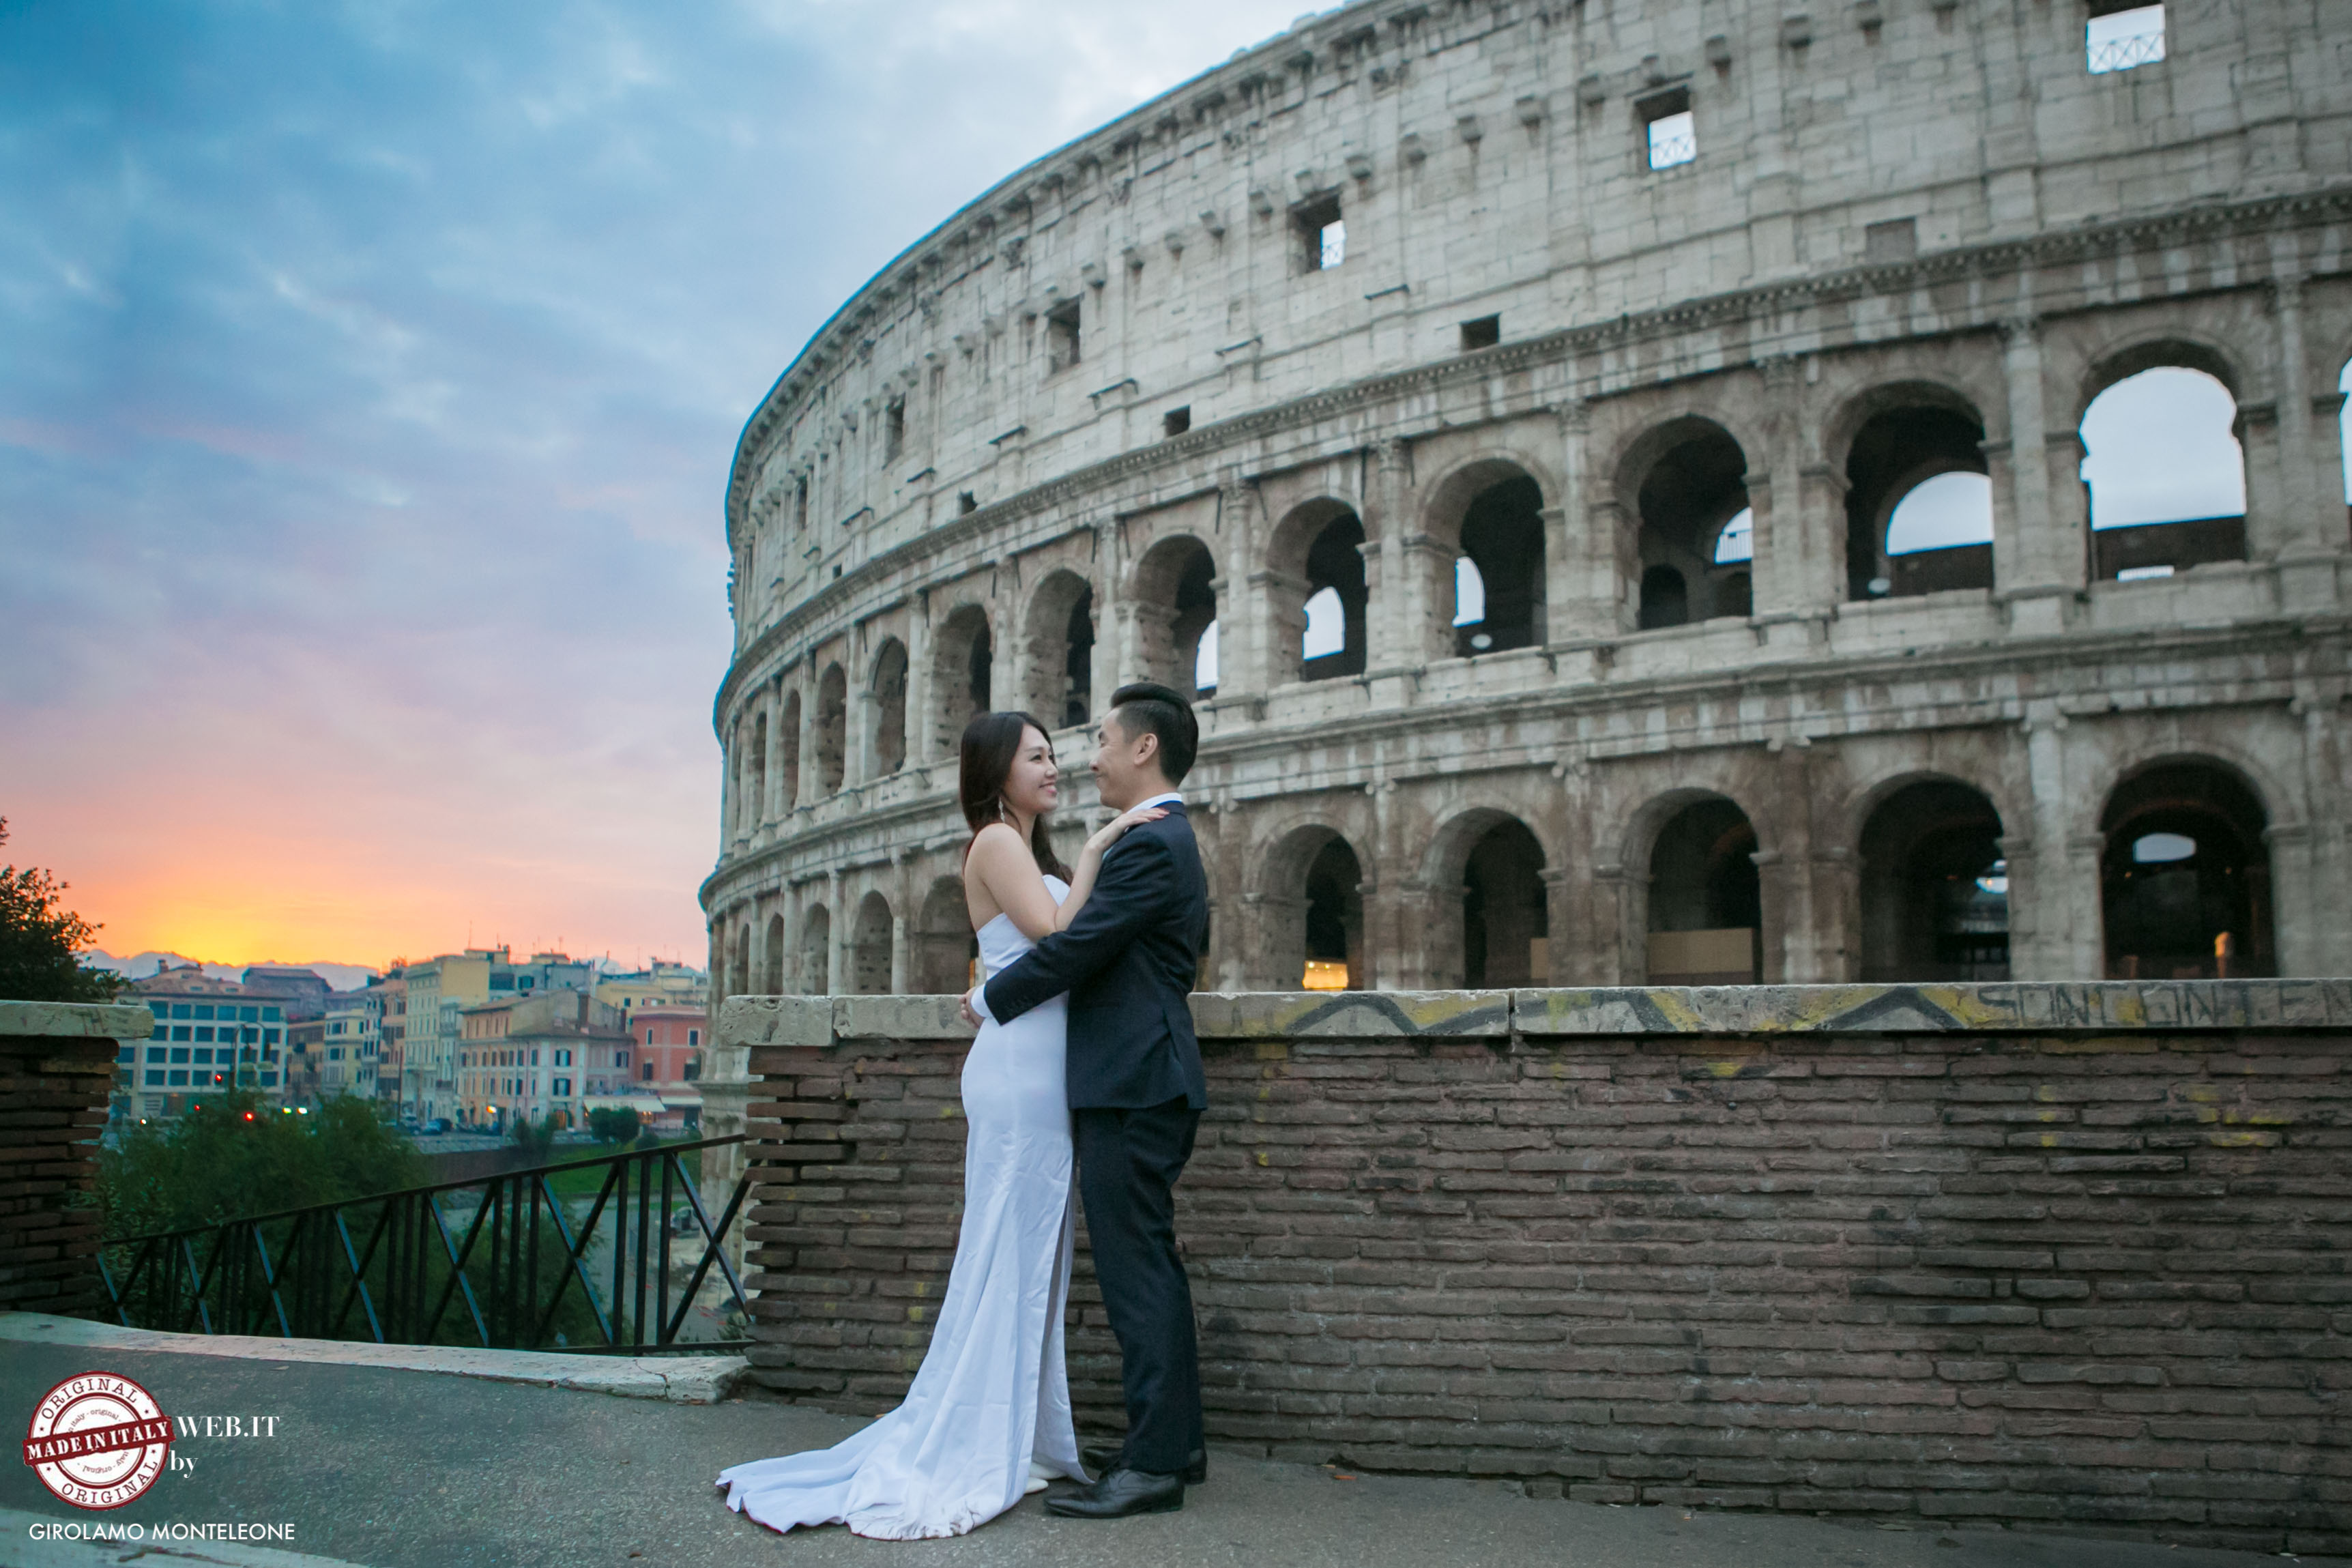 意大利_摄影师_photographer_in_rome_honeymoon__PHOTOSHOOTING_IN_ROME_ITALY_GERALD__JENIE_FROM_SINGAPORE_GIROLAMO_MONTELEONE_PHOTOJOURNALIST2017novembre250717081684